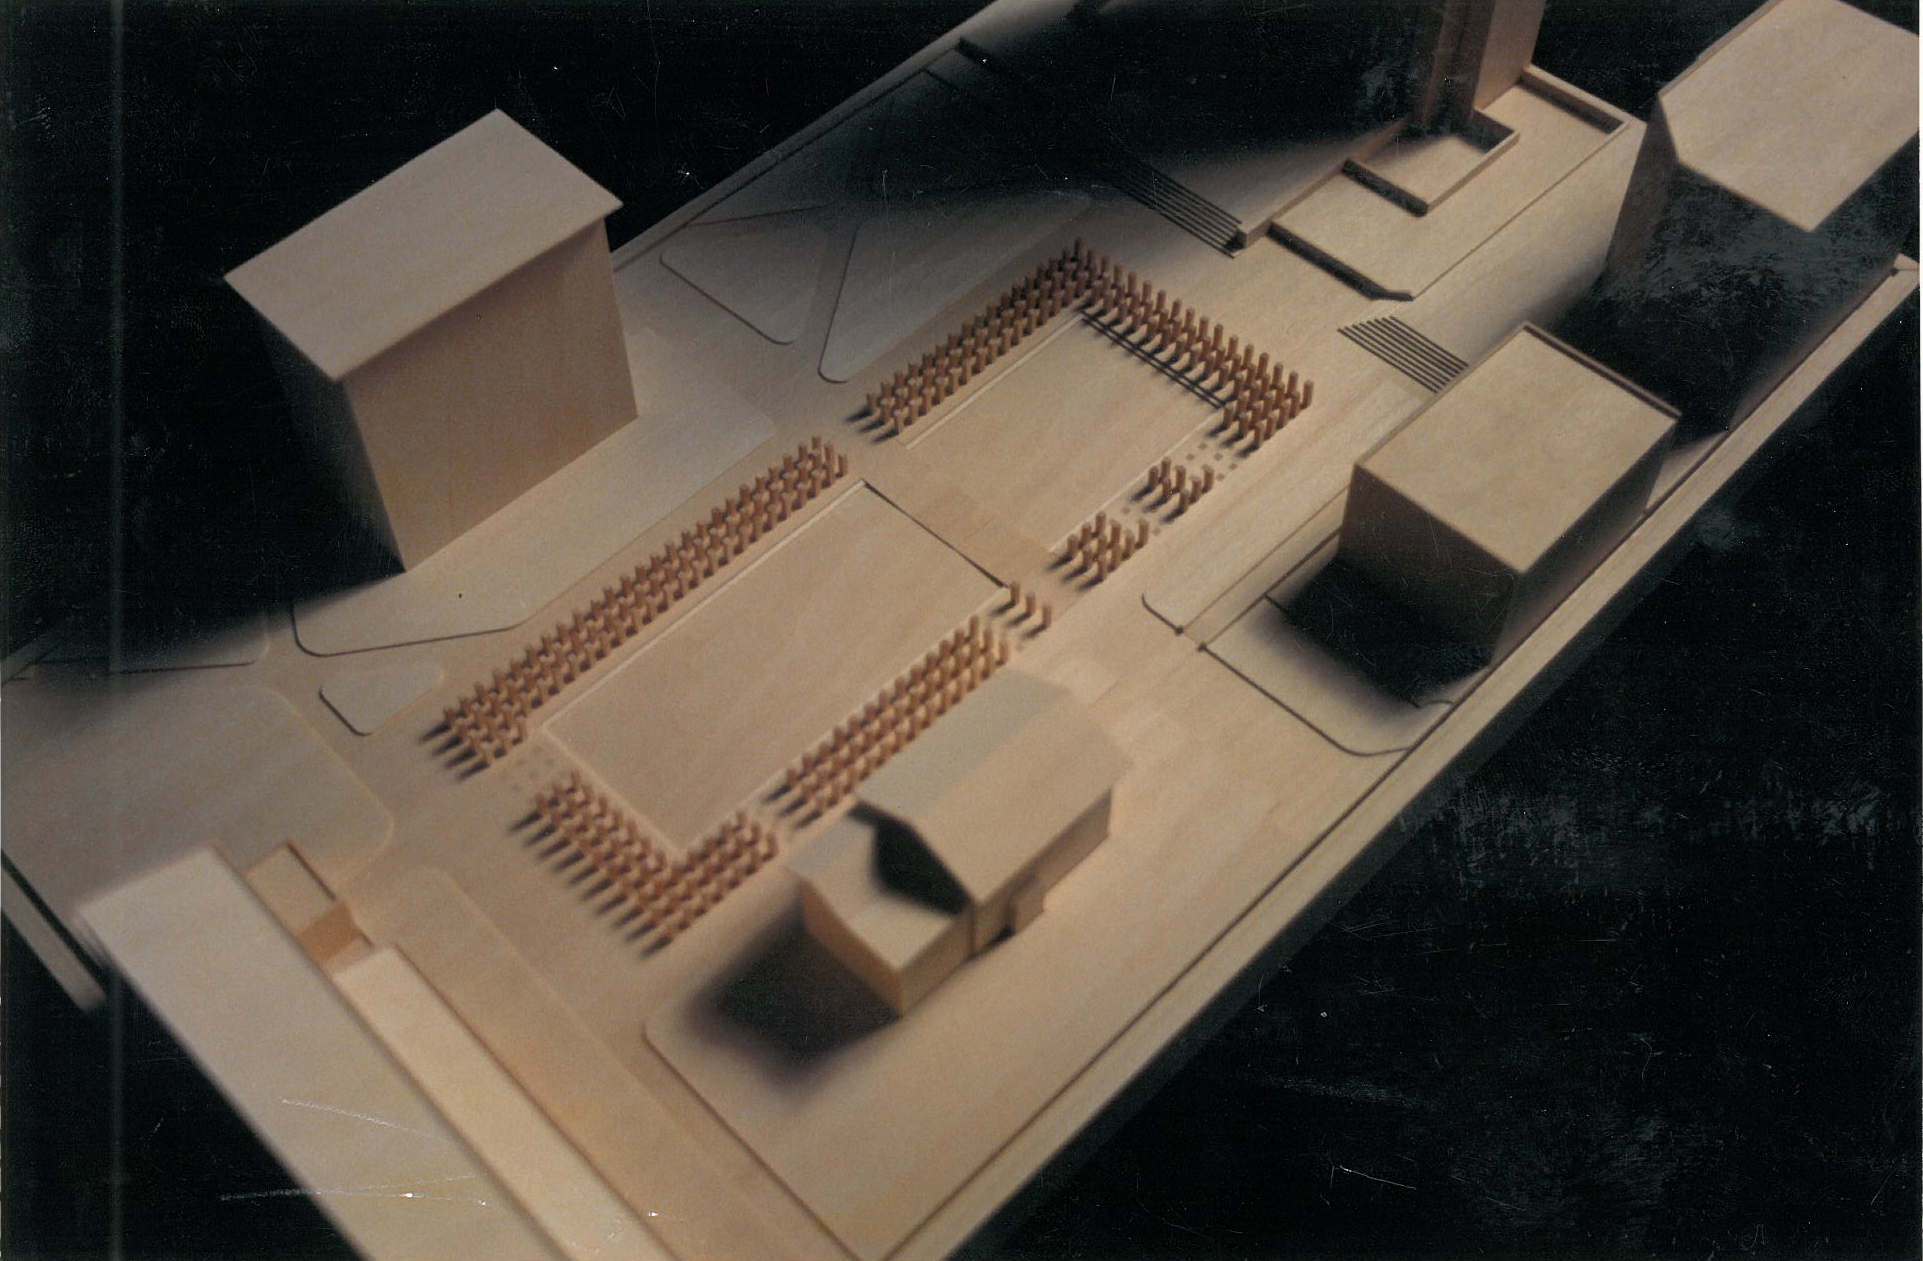 BA_lernercenter_model3.jpg